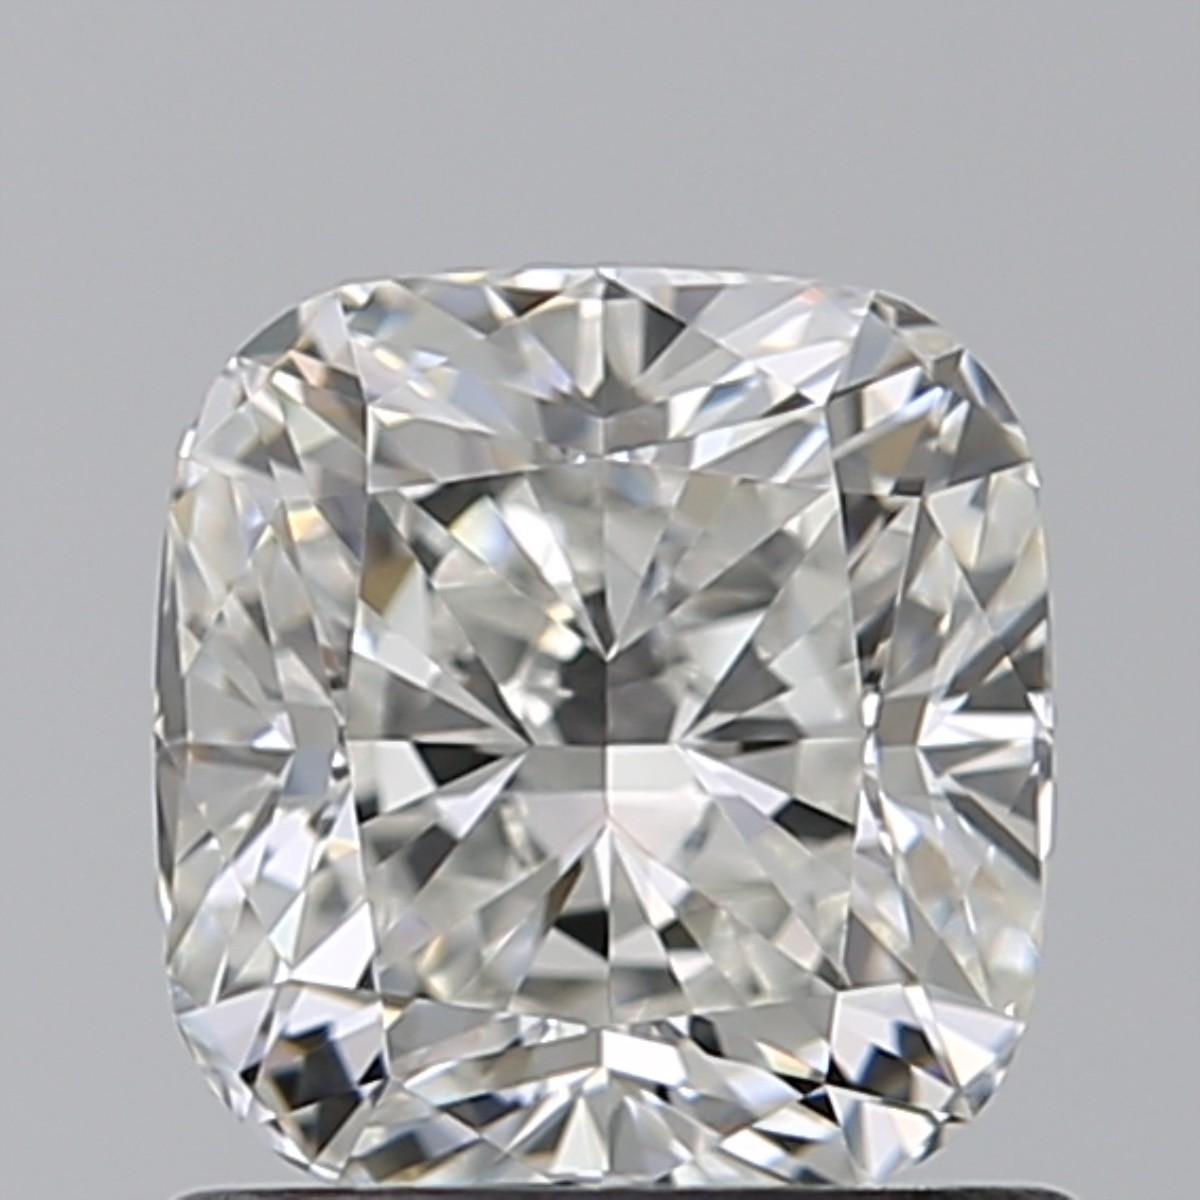 1.01 Carat Cushion Brilliant Diamond (G/IF)